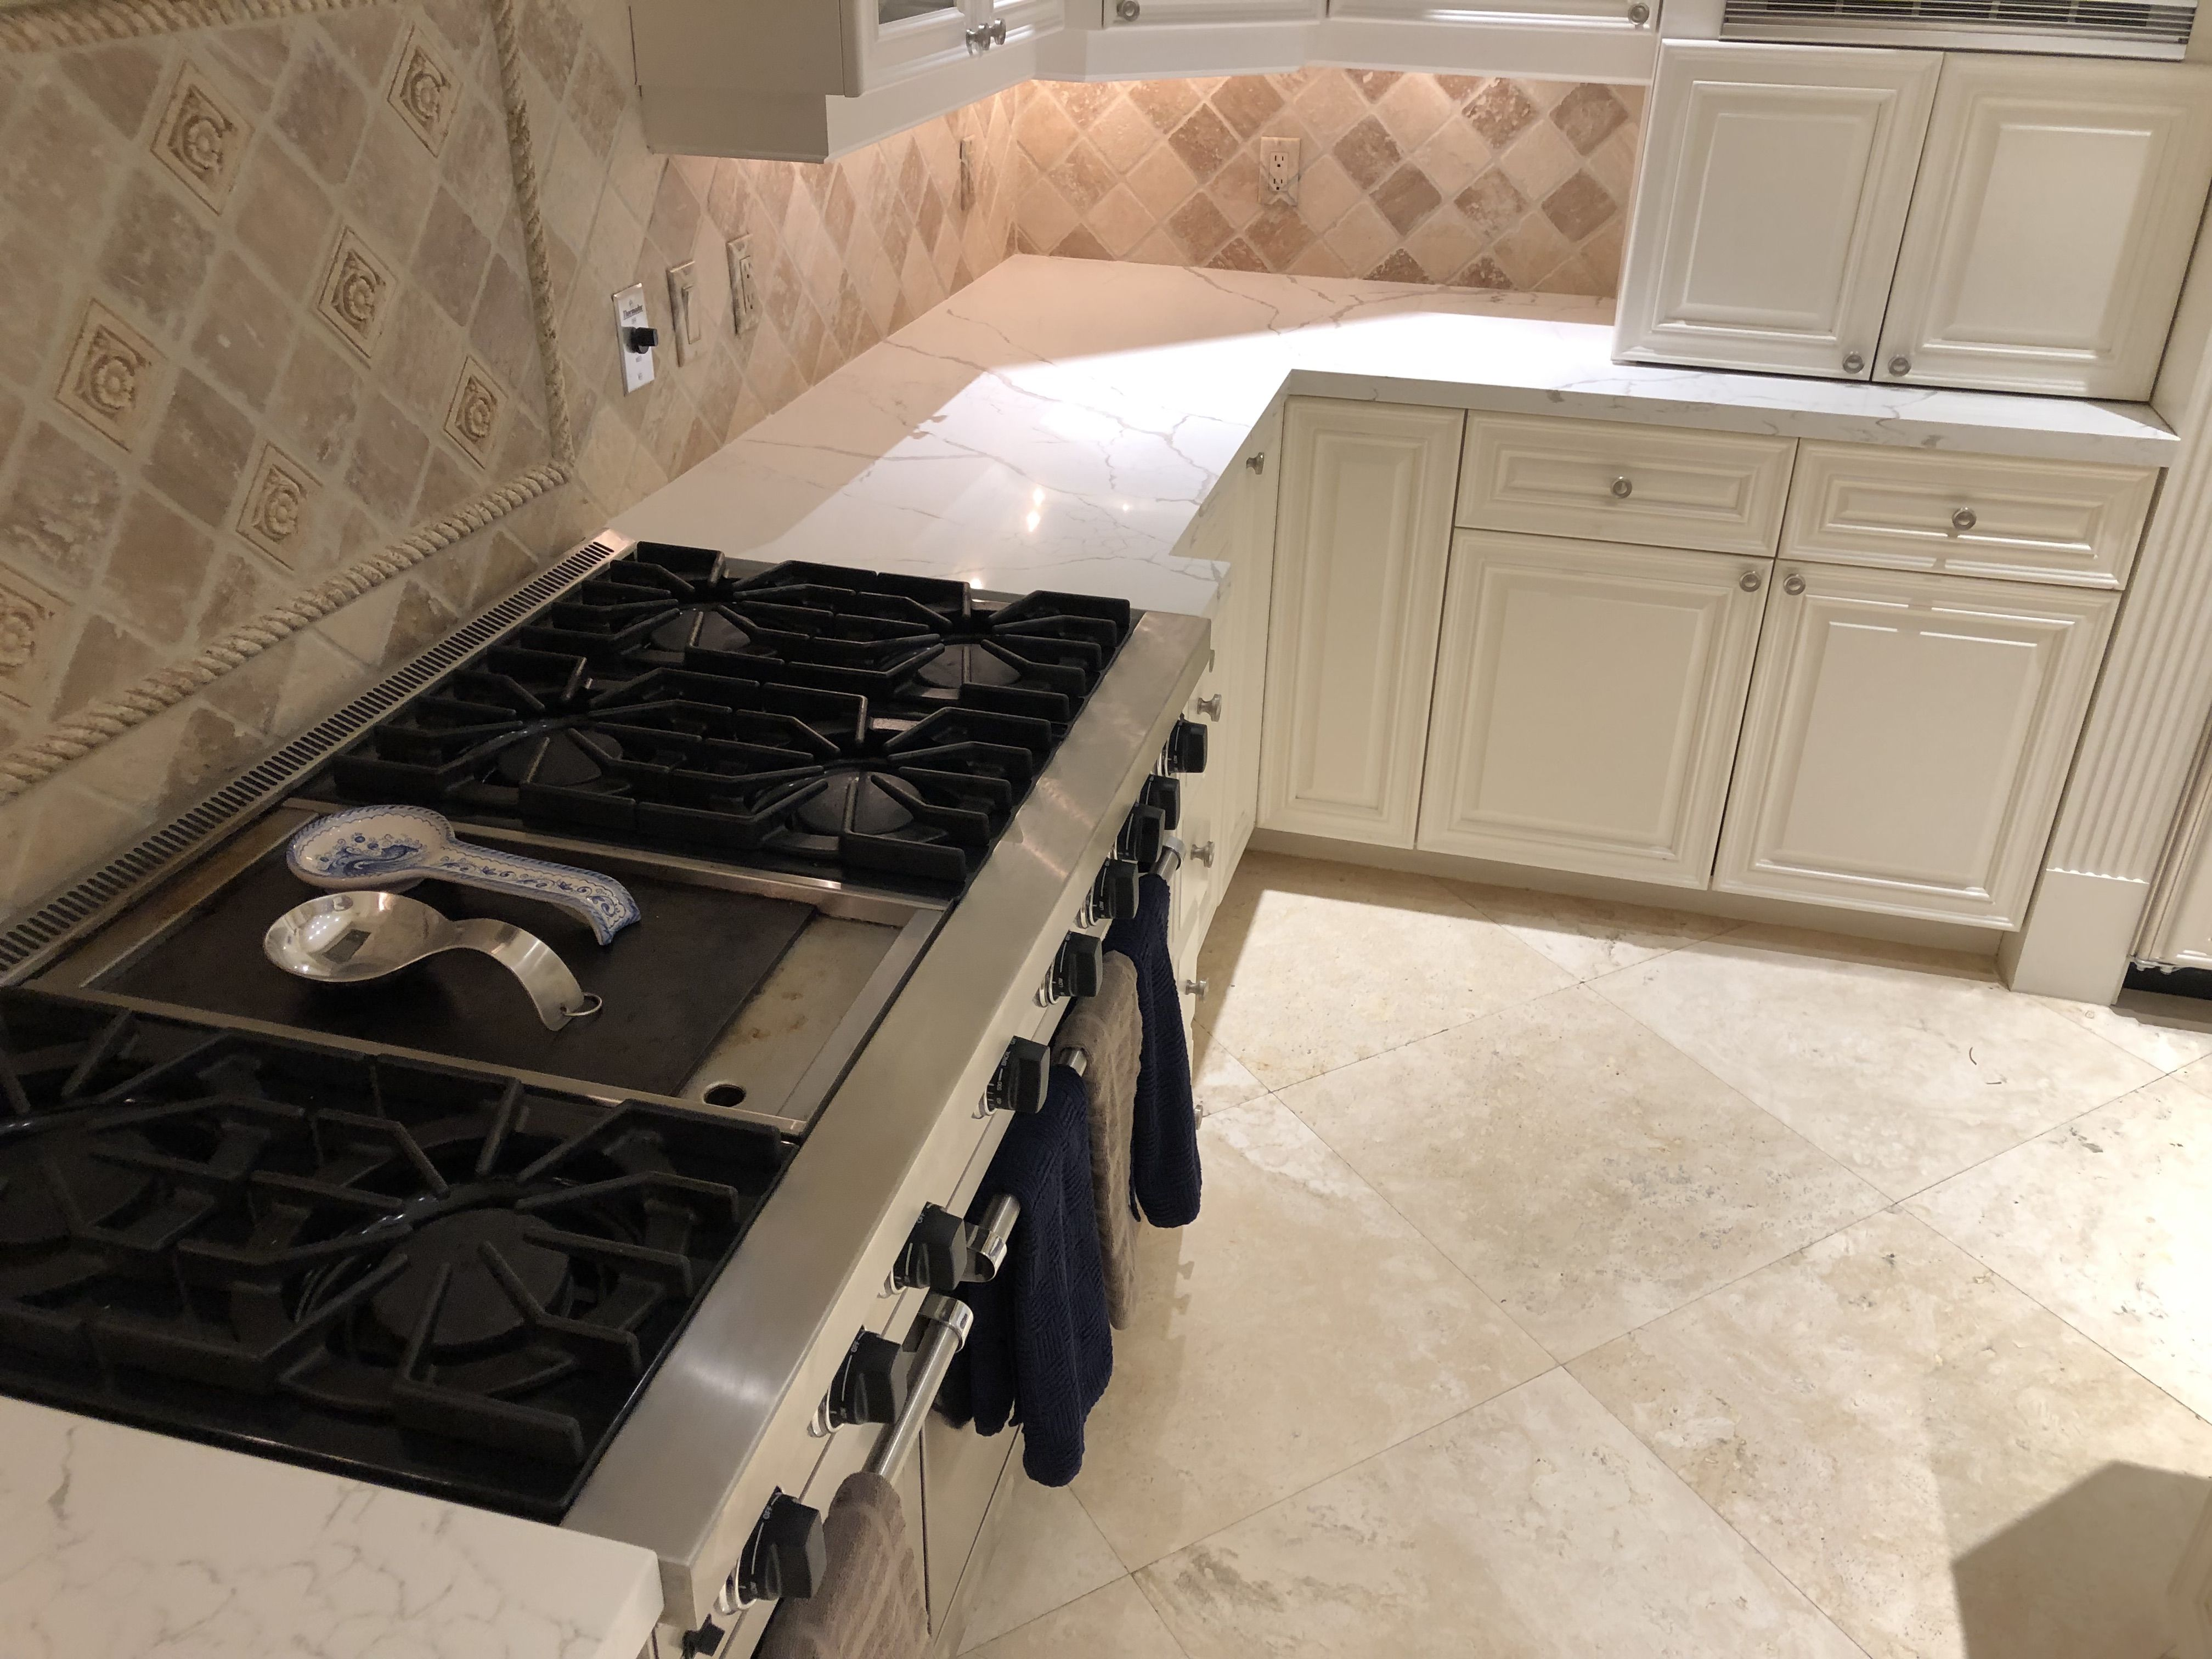 If You Like To Know How Calacatta Laza Countertops Loos Installed